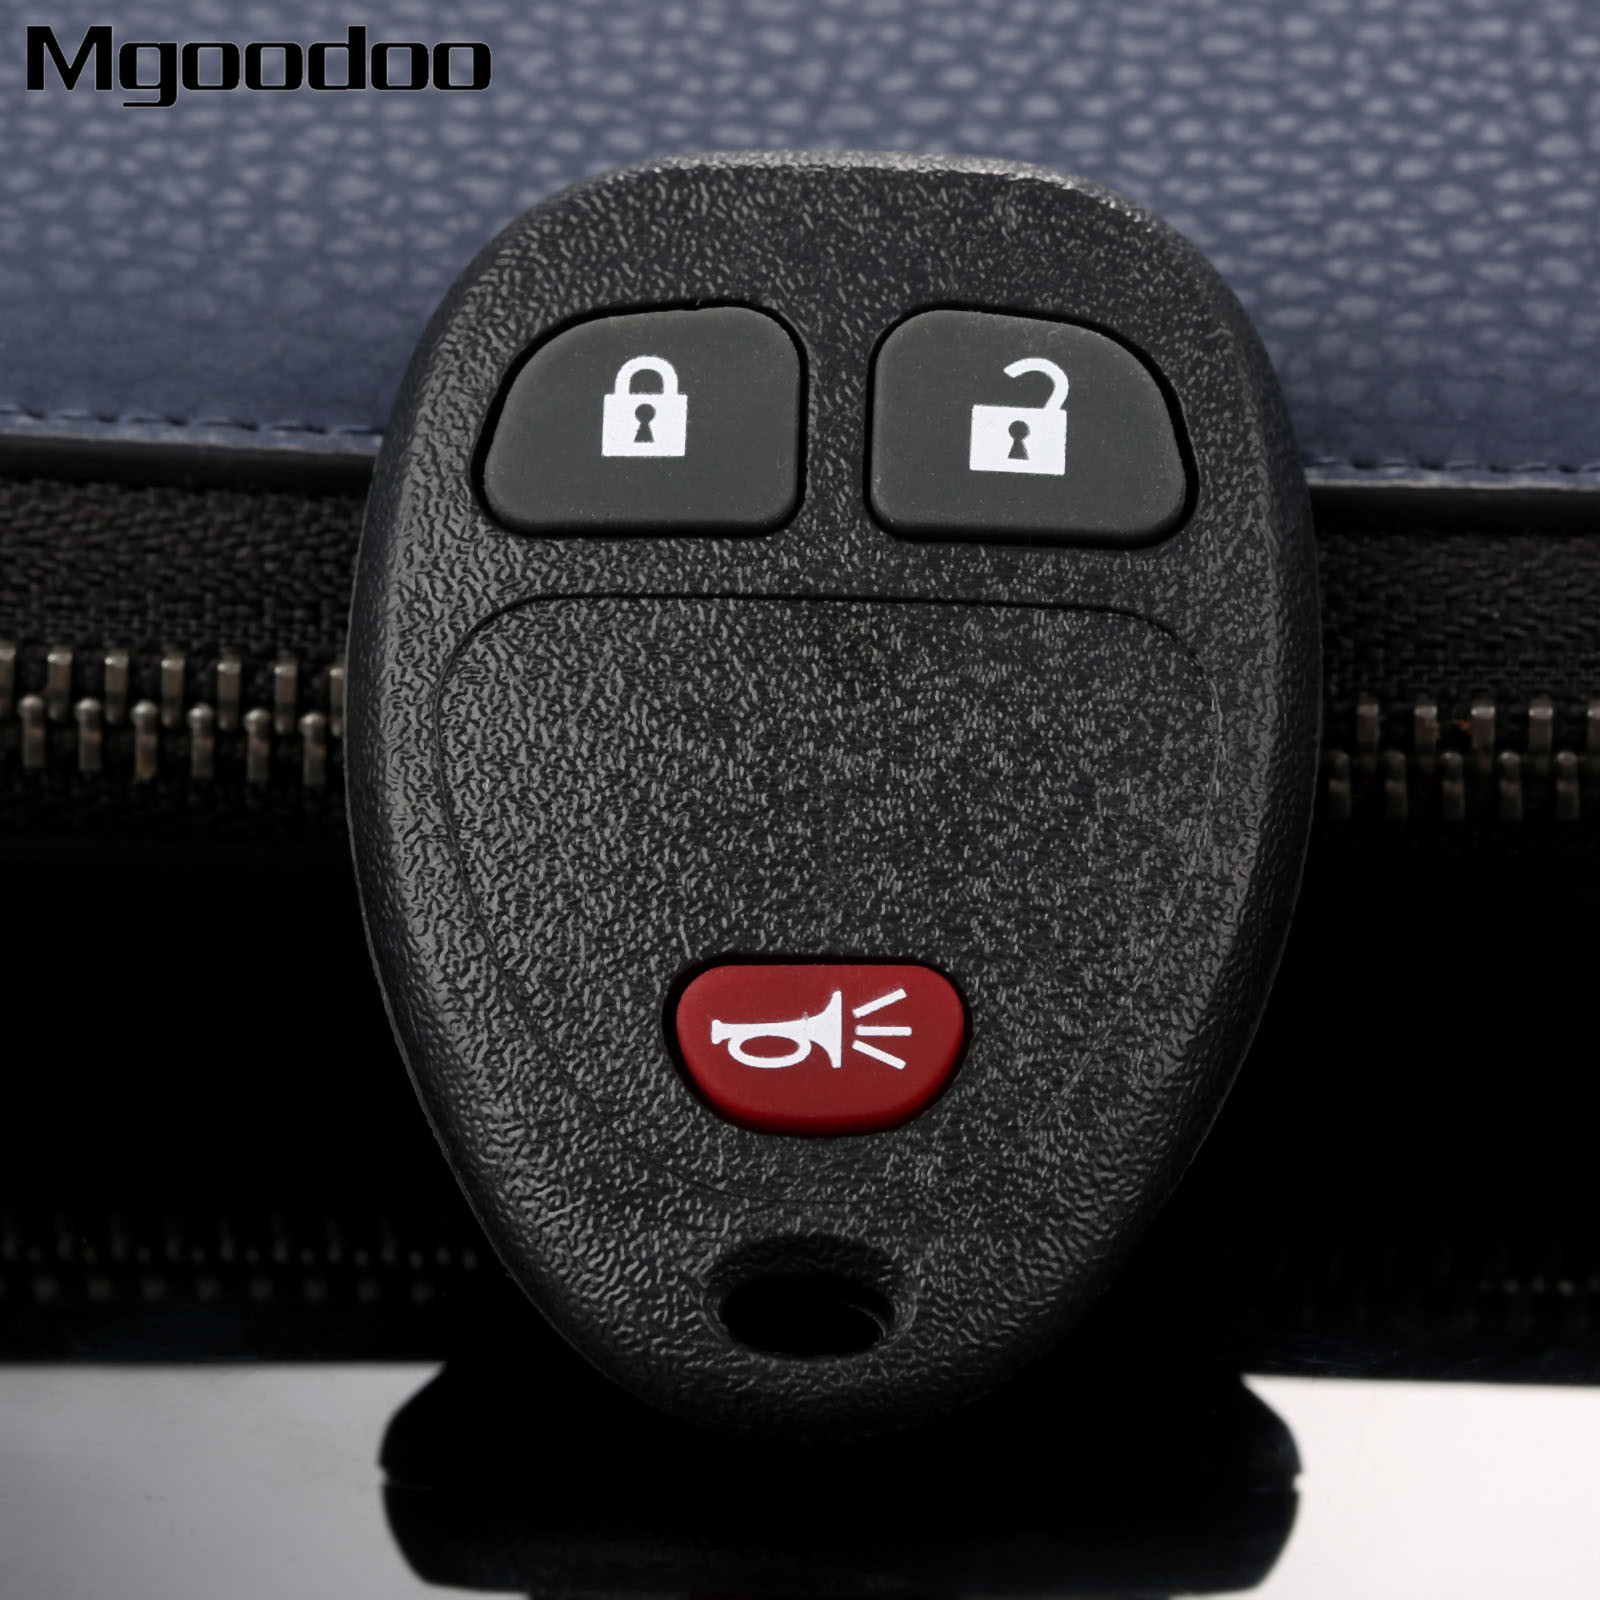 3 Buttons Remote Key Case Shell Keyless Entry Key Fob For Chevrolet Hhr Uplander Pontiac Montana Saturn Buick Kobgt04a 15777636